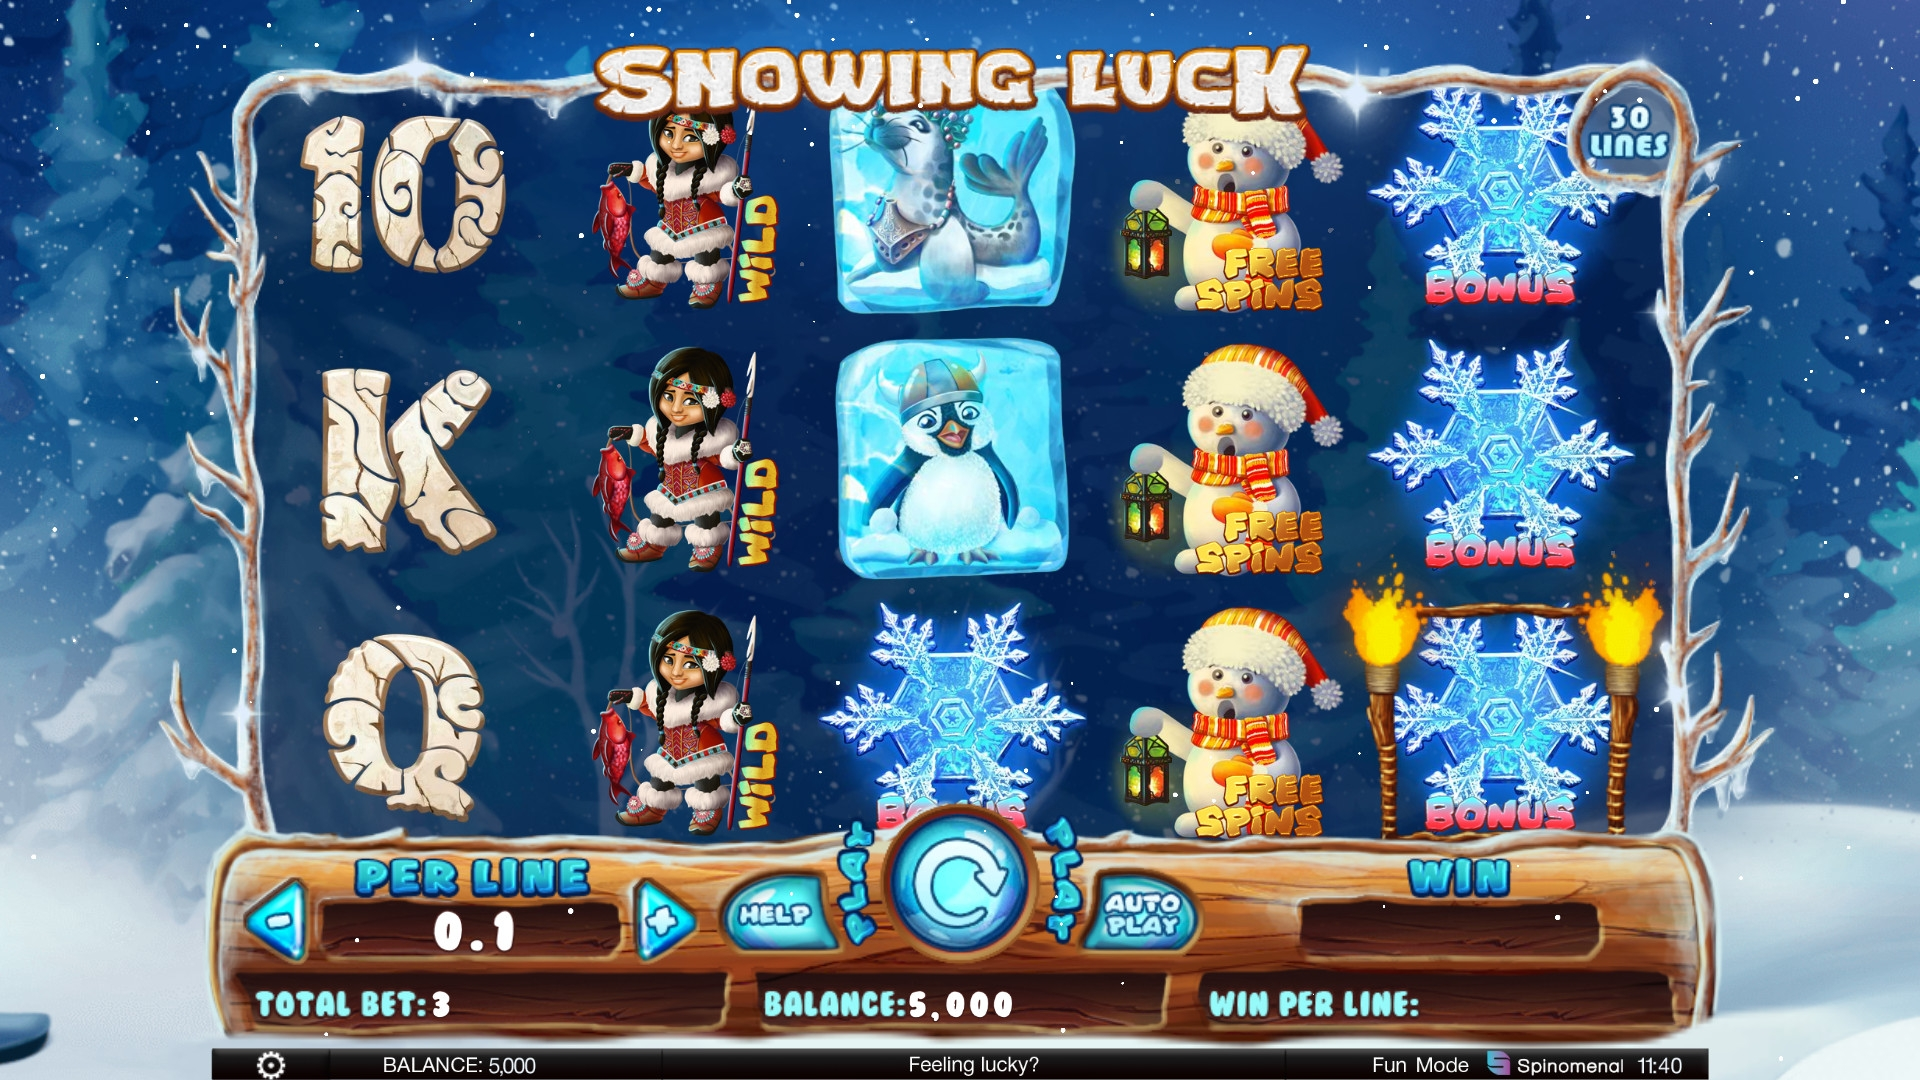 Snowing Luck (Snowing Luck) from category Slots